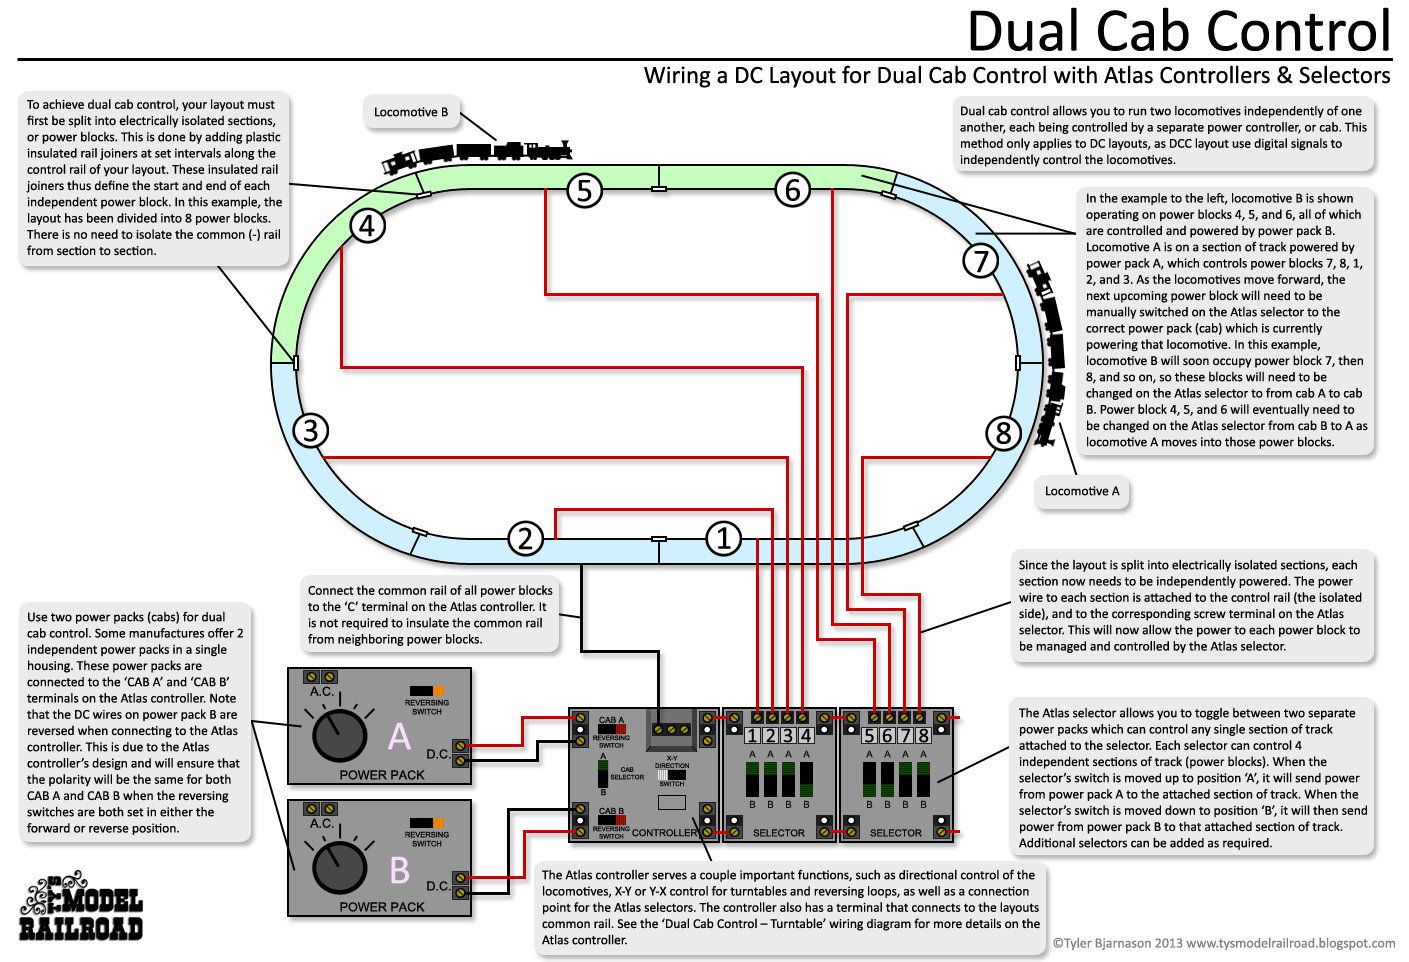 Tys Model Railroad Wiring Diagrams Ford Together With Garage Electrical How To Wire A Layout For Dual Cab Control Using An Atlas Controller And Selectors